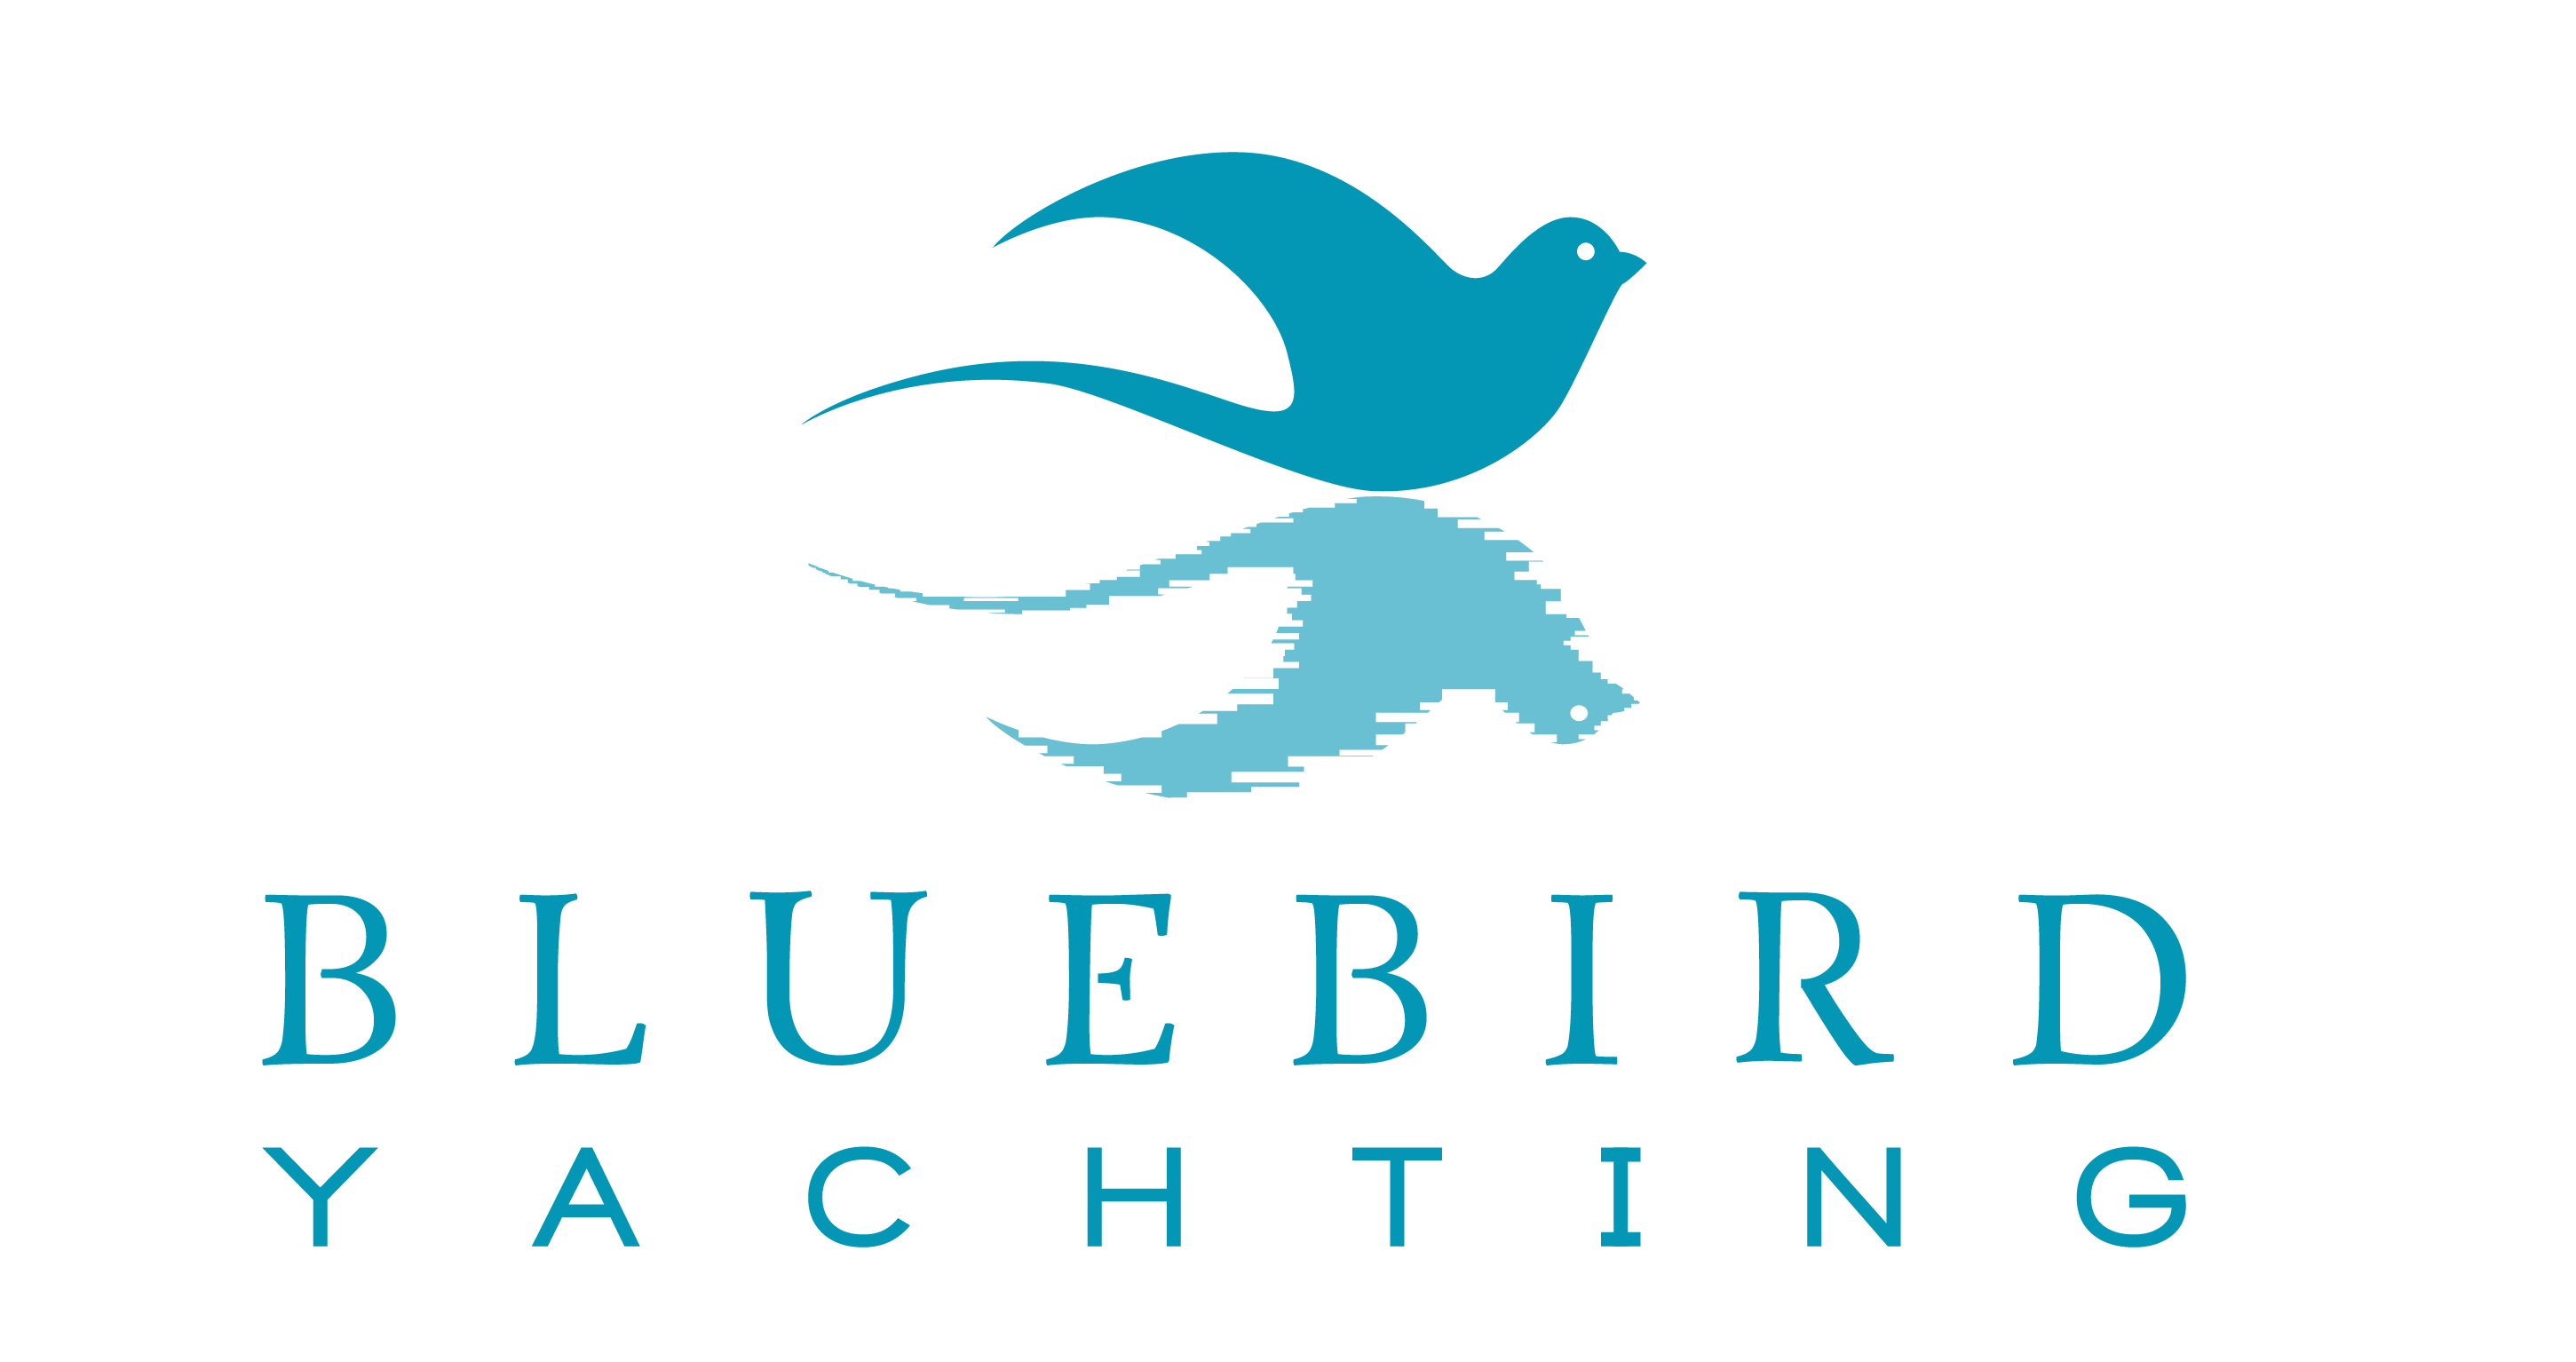 Bluebird Yachting | MY Miredo - Motoryacht for charter | Bluebird Yachting